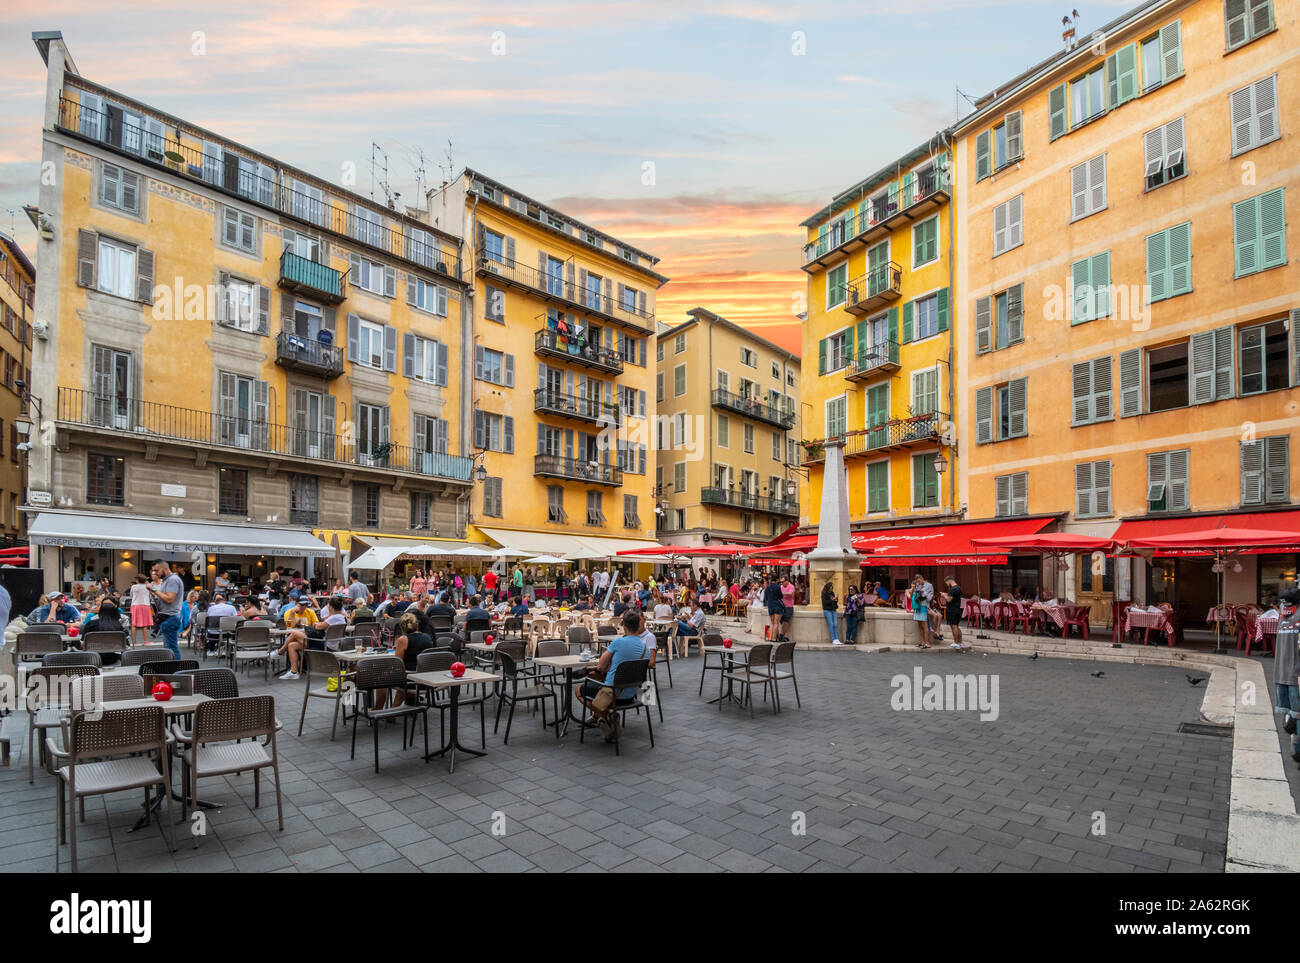 Tourists and locals enjoy an early evening at the cafes, the water fountain, and shops in Place Rossetti, one of the main piazzas in Vieux Nice France Stock Photo